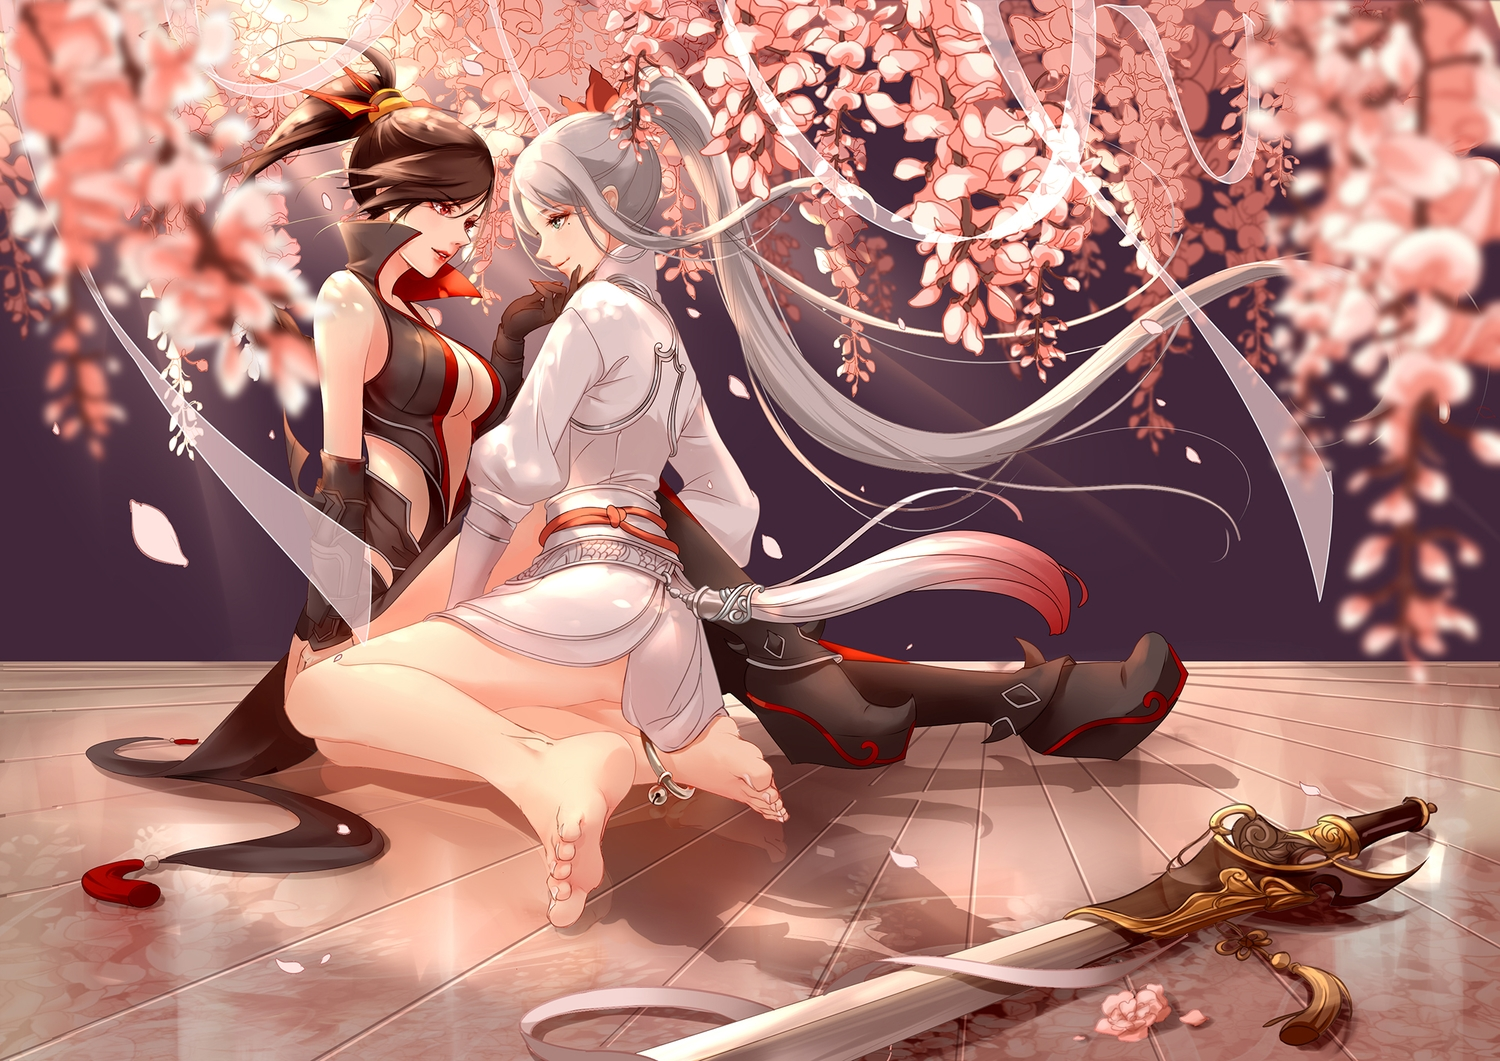 2girls barefoot black_hair cherry_blossoms clouble flowers gray_hair petals ponytail sword weapon